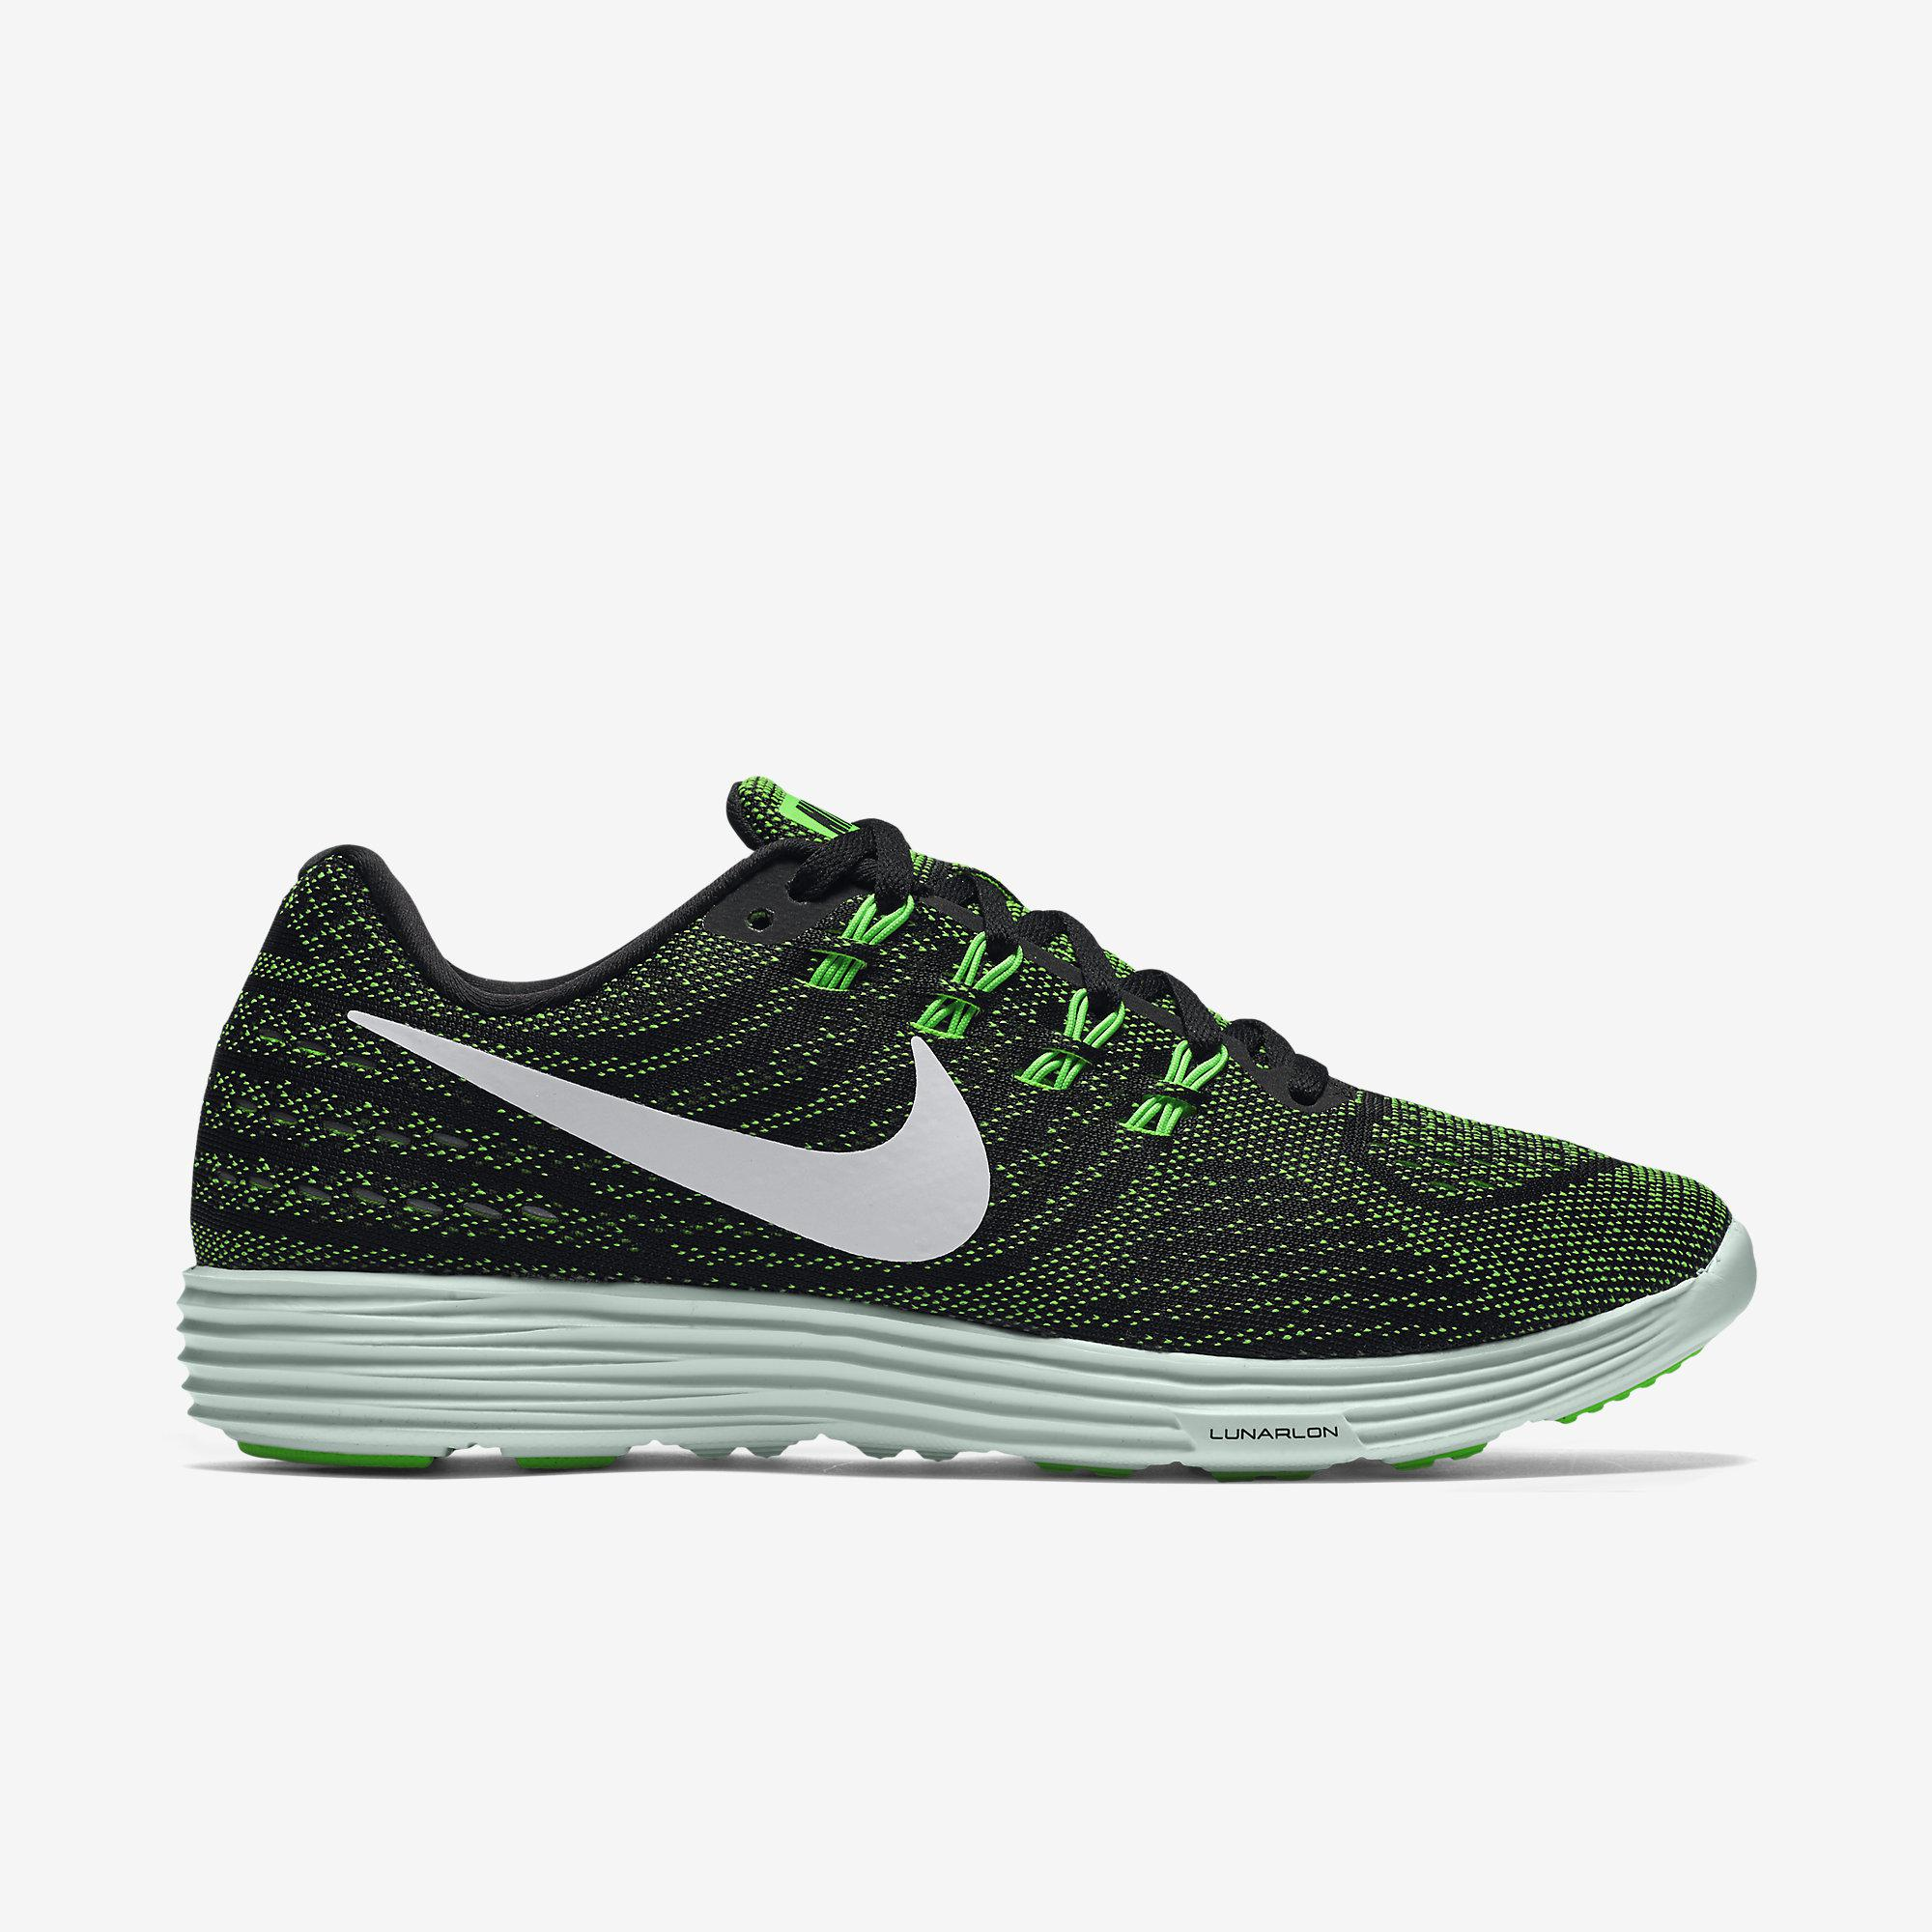 5a3edcaee1f5 Nike Womens LunarTempo 2 Running Shoes - Volt Green White - Tennisnuts.com